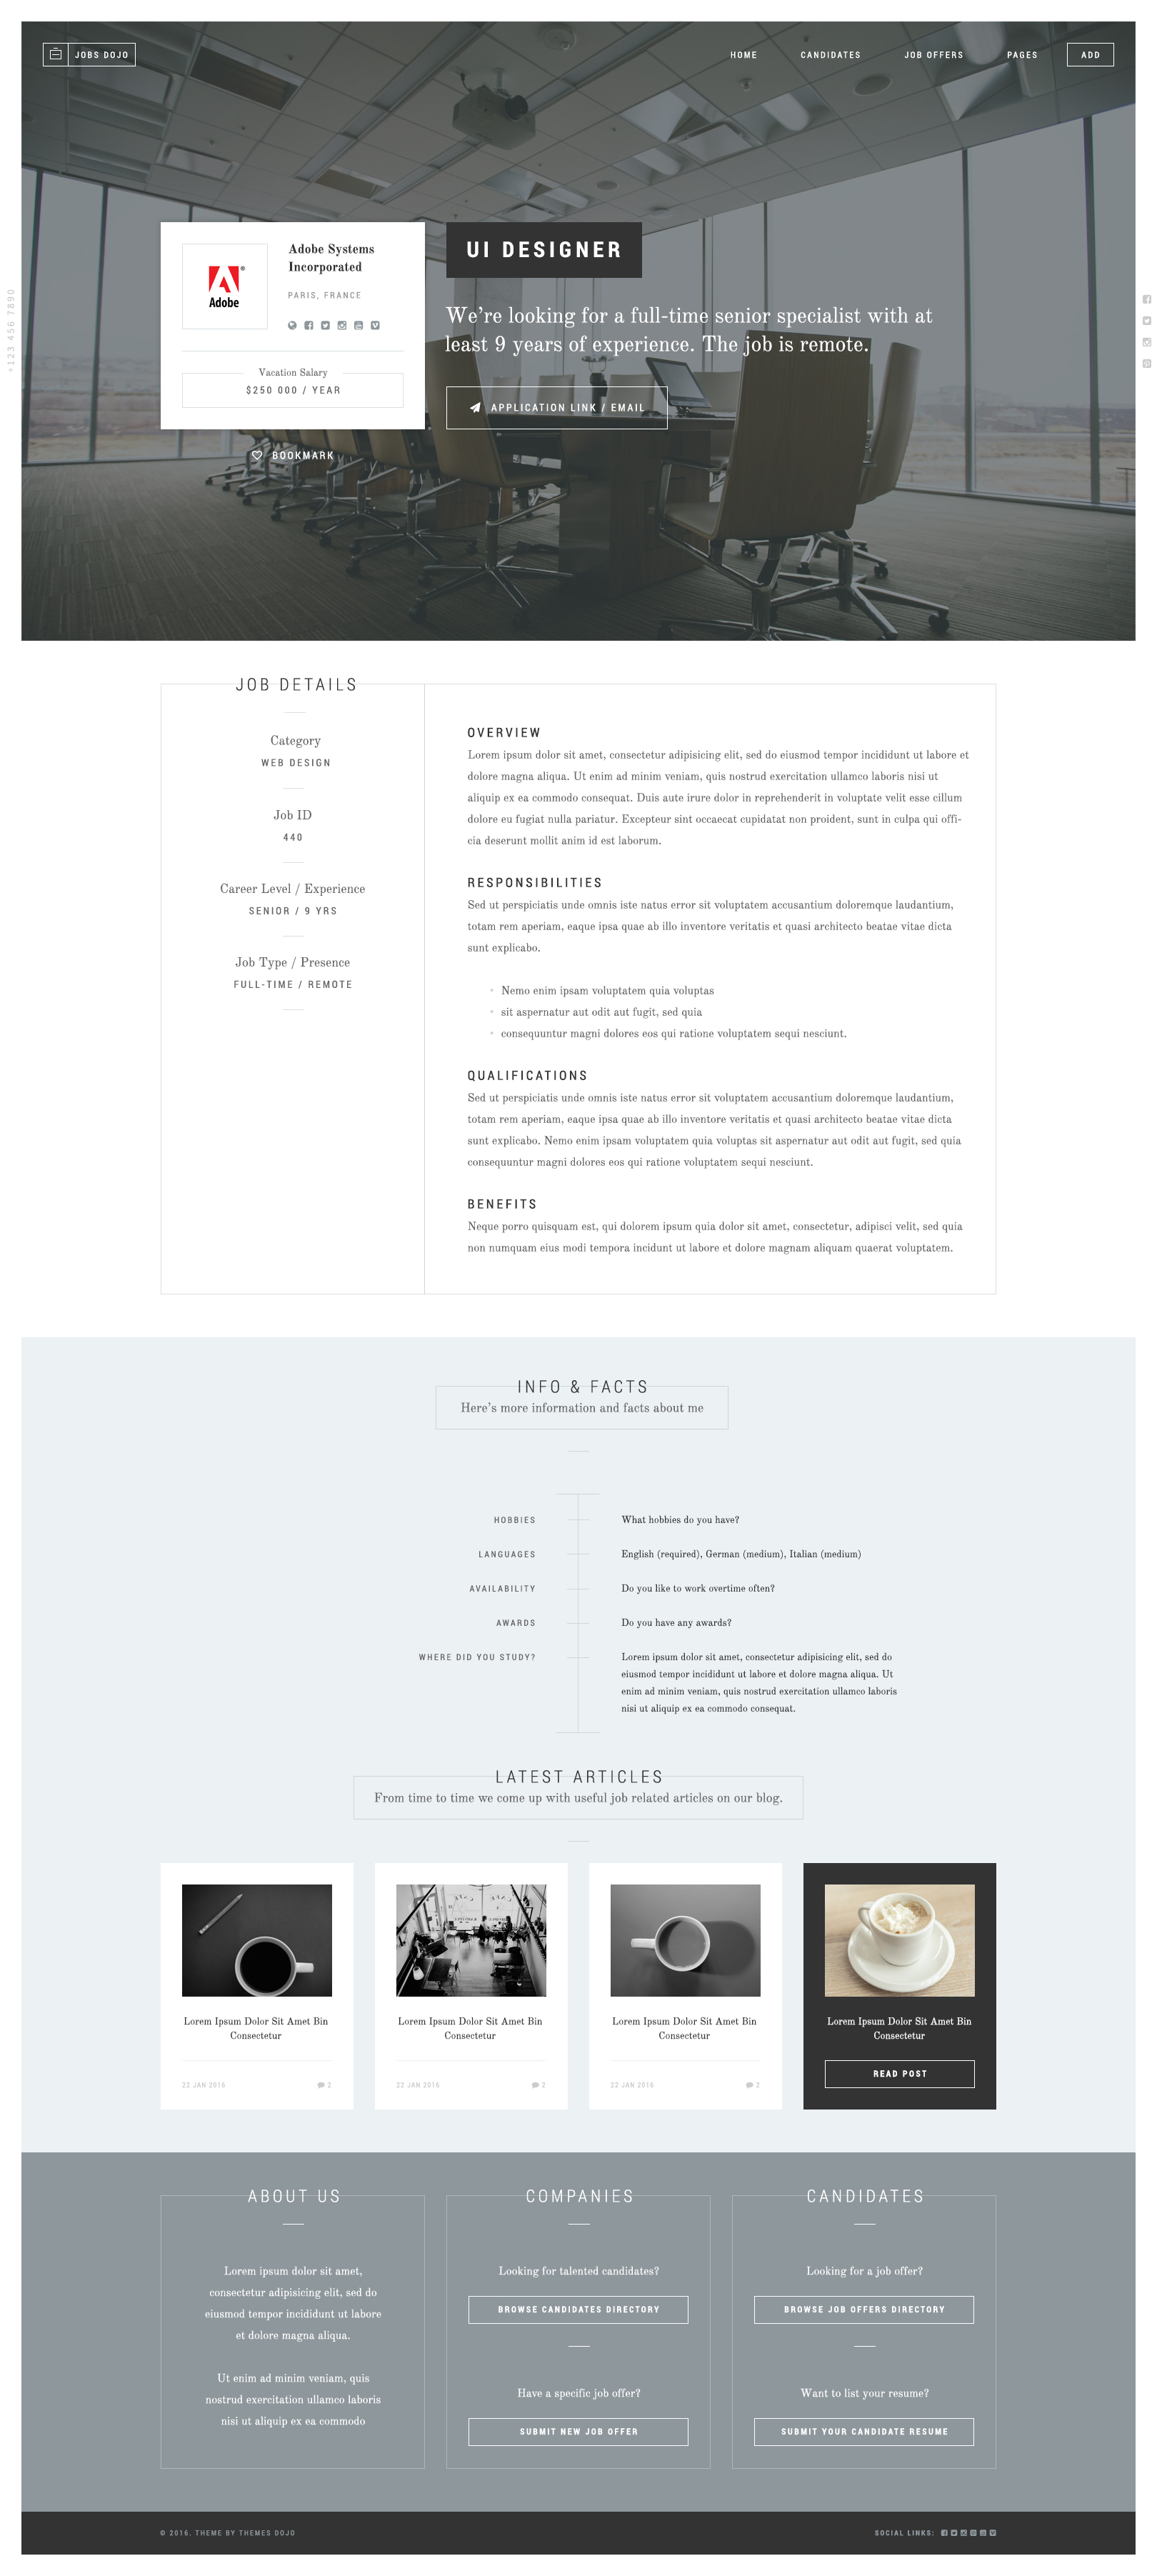 Medical Sales Resume Sample Template%0A Network design resume samples documents The second challenge asked  participants to create similar visuals but for